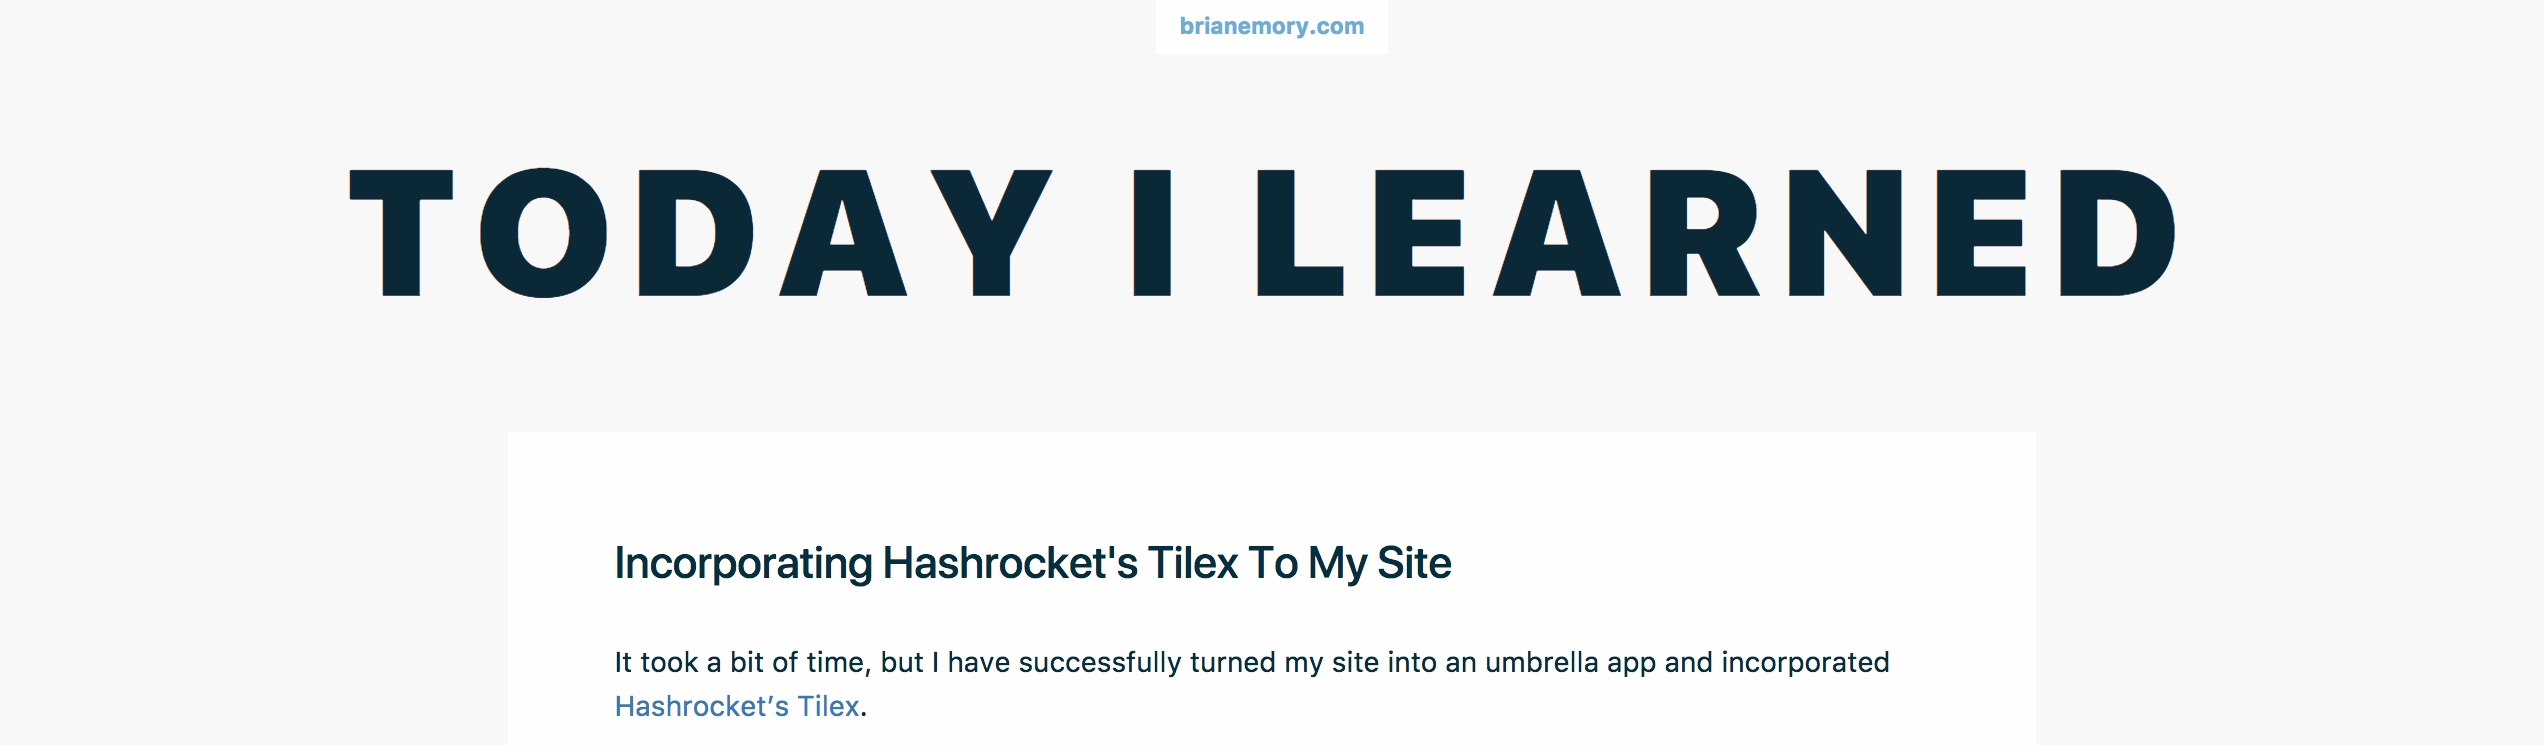 Phoenix: Creating An Umbrella App With Your Site And